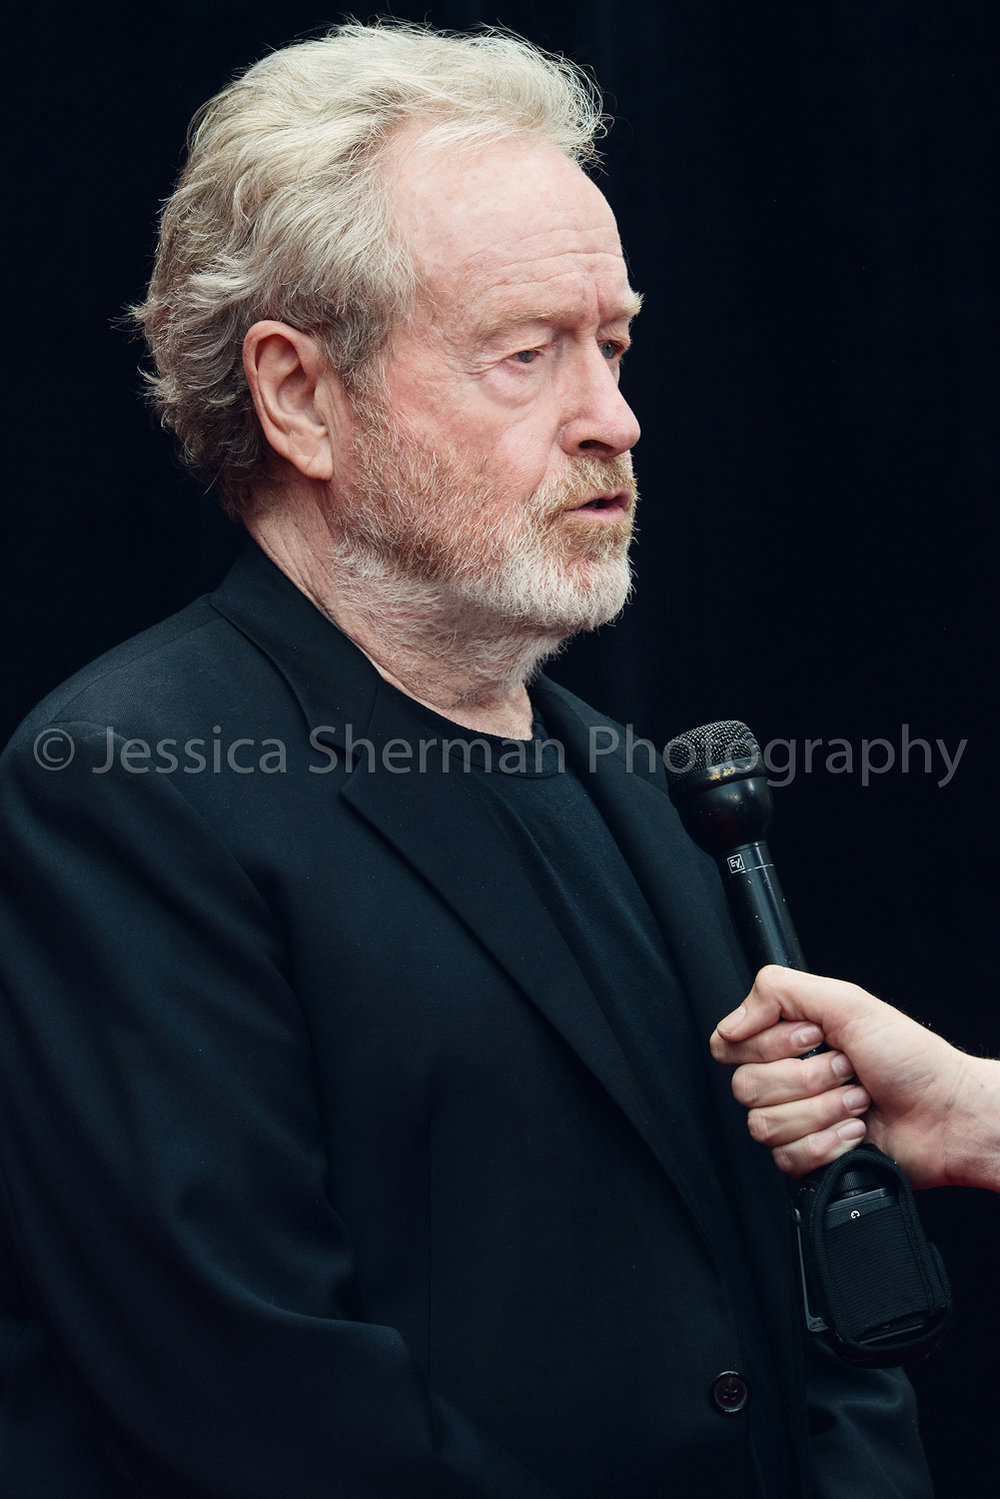 Ridley-Scott-Jessica-Sherman (1 of 1).jpg